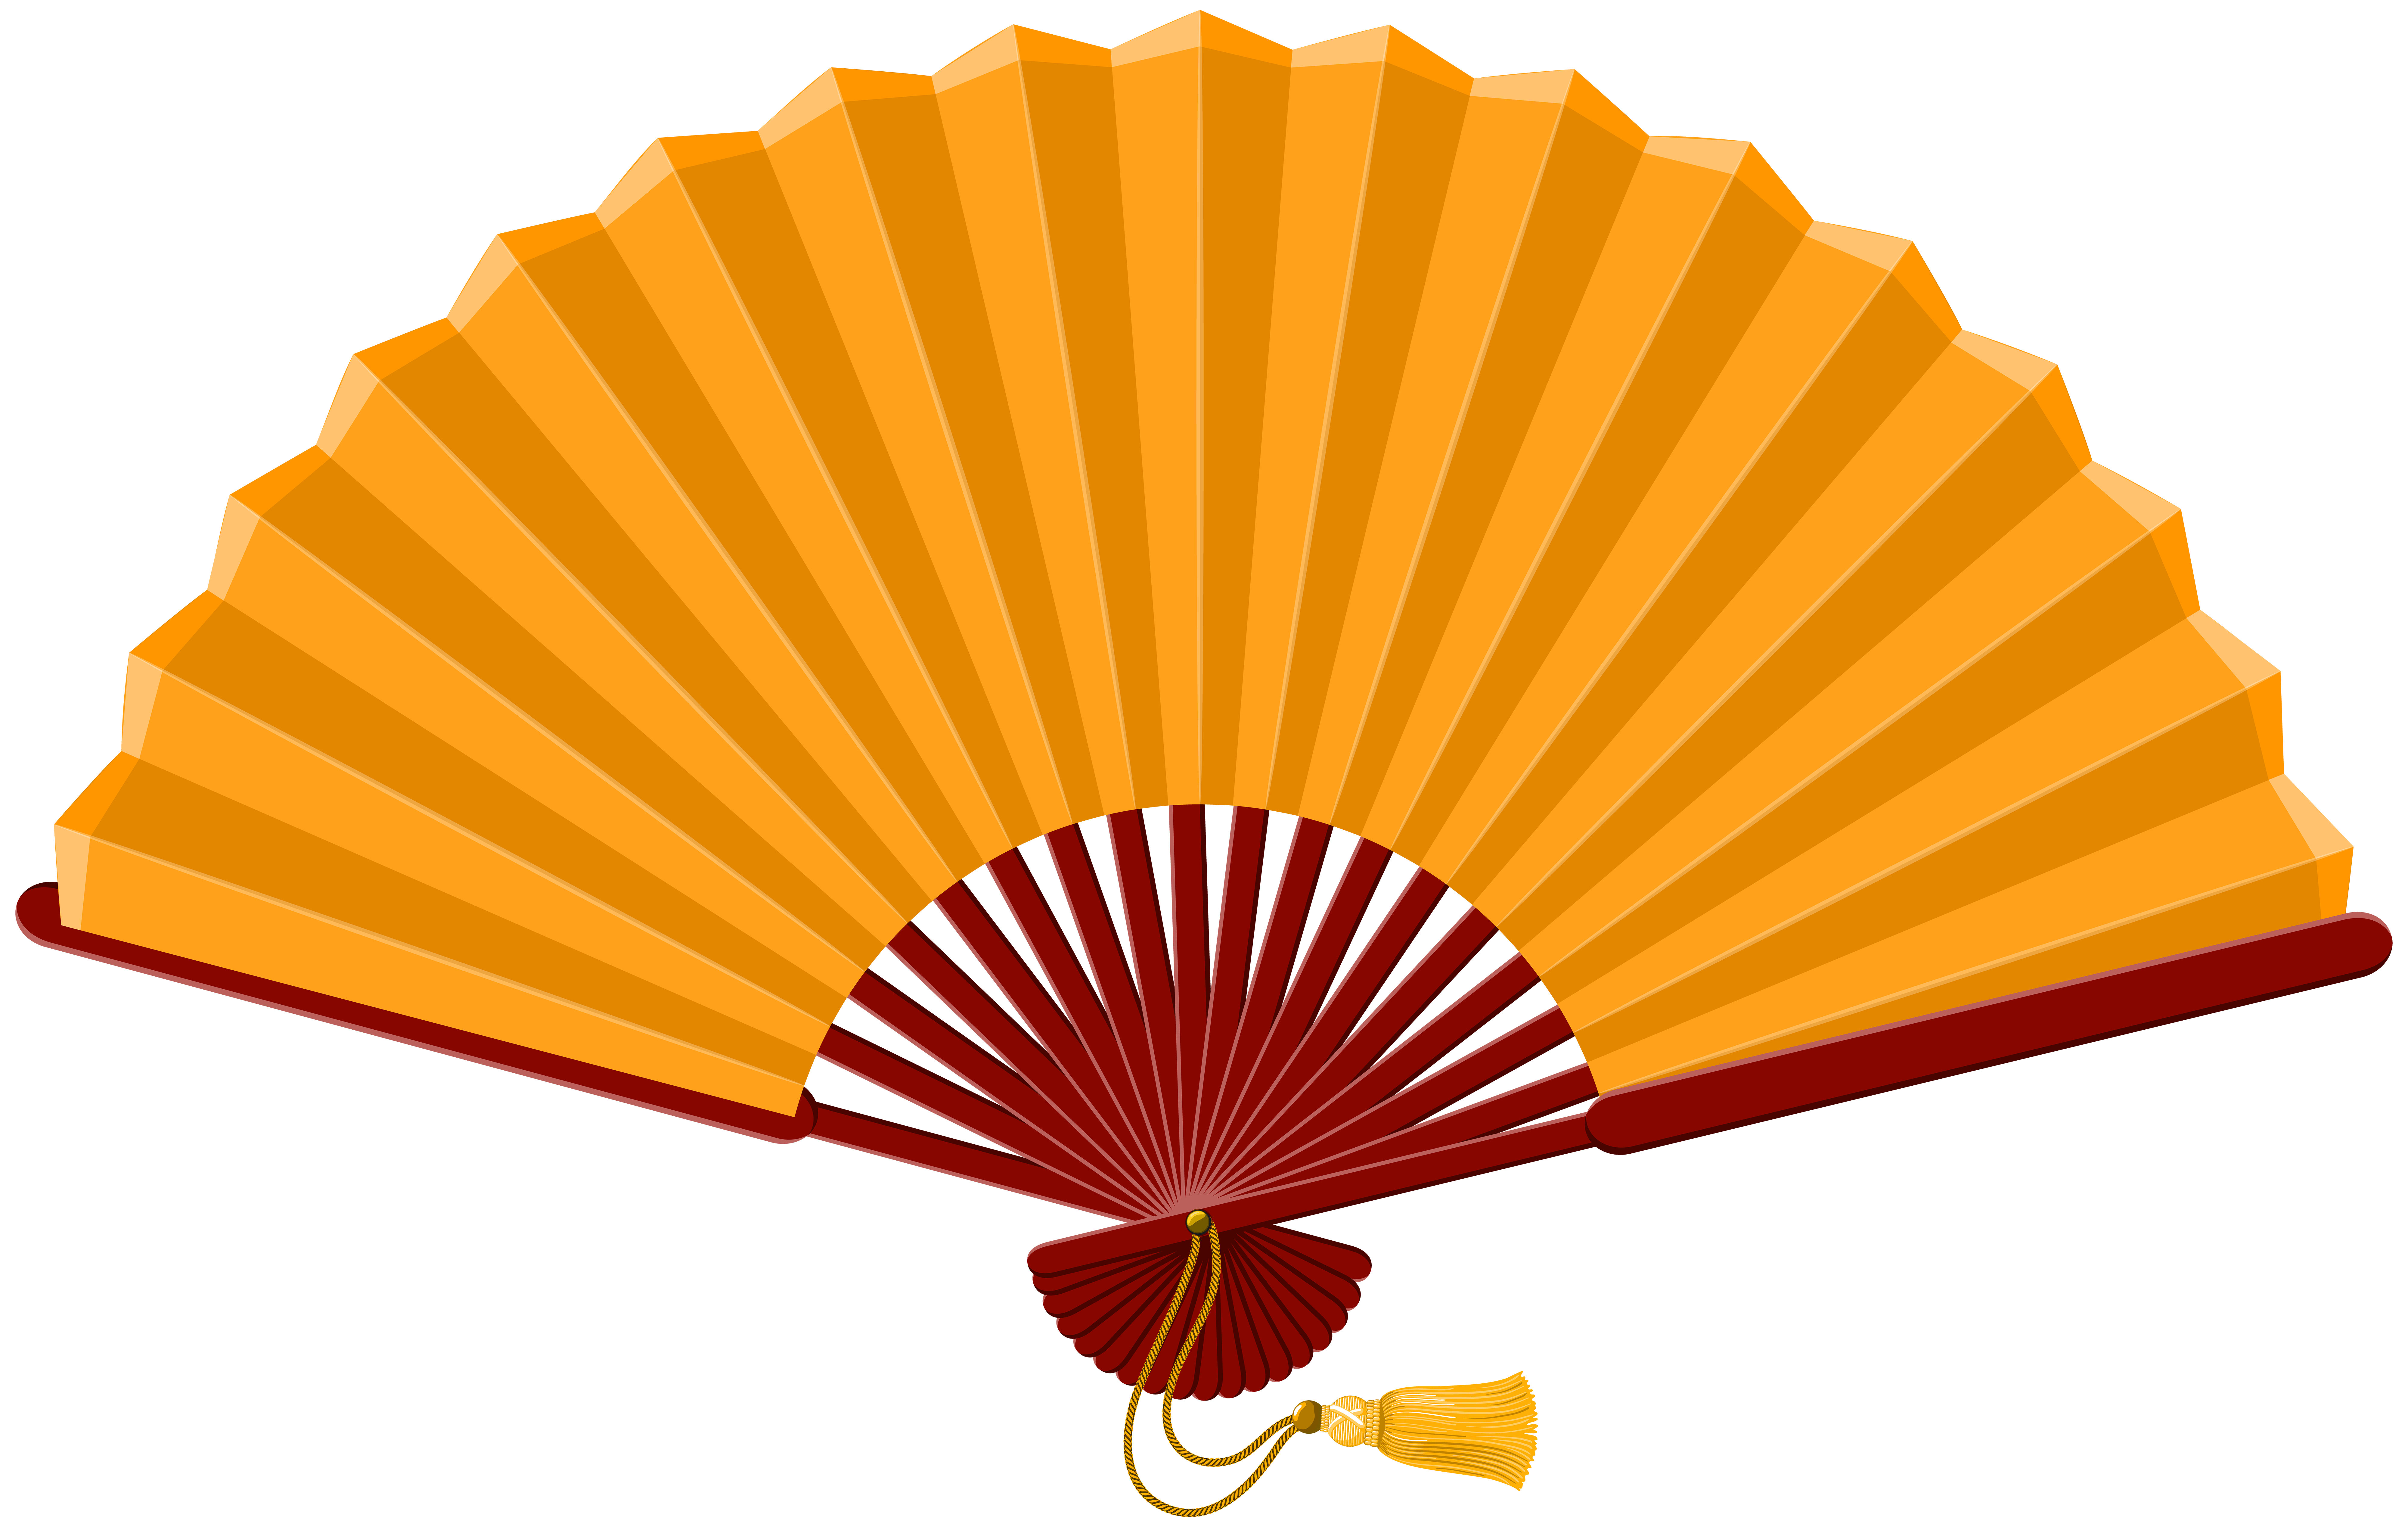 Fan clipart. Chinese png clip art